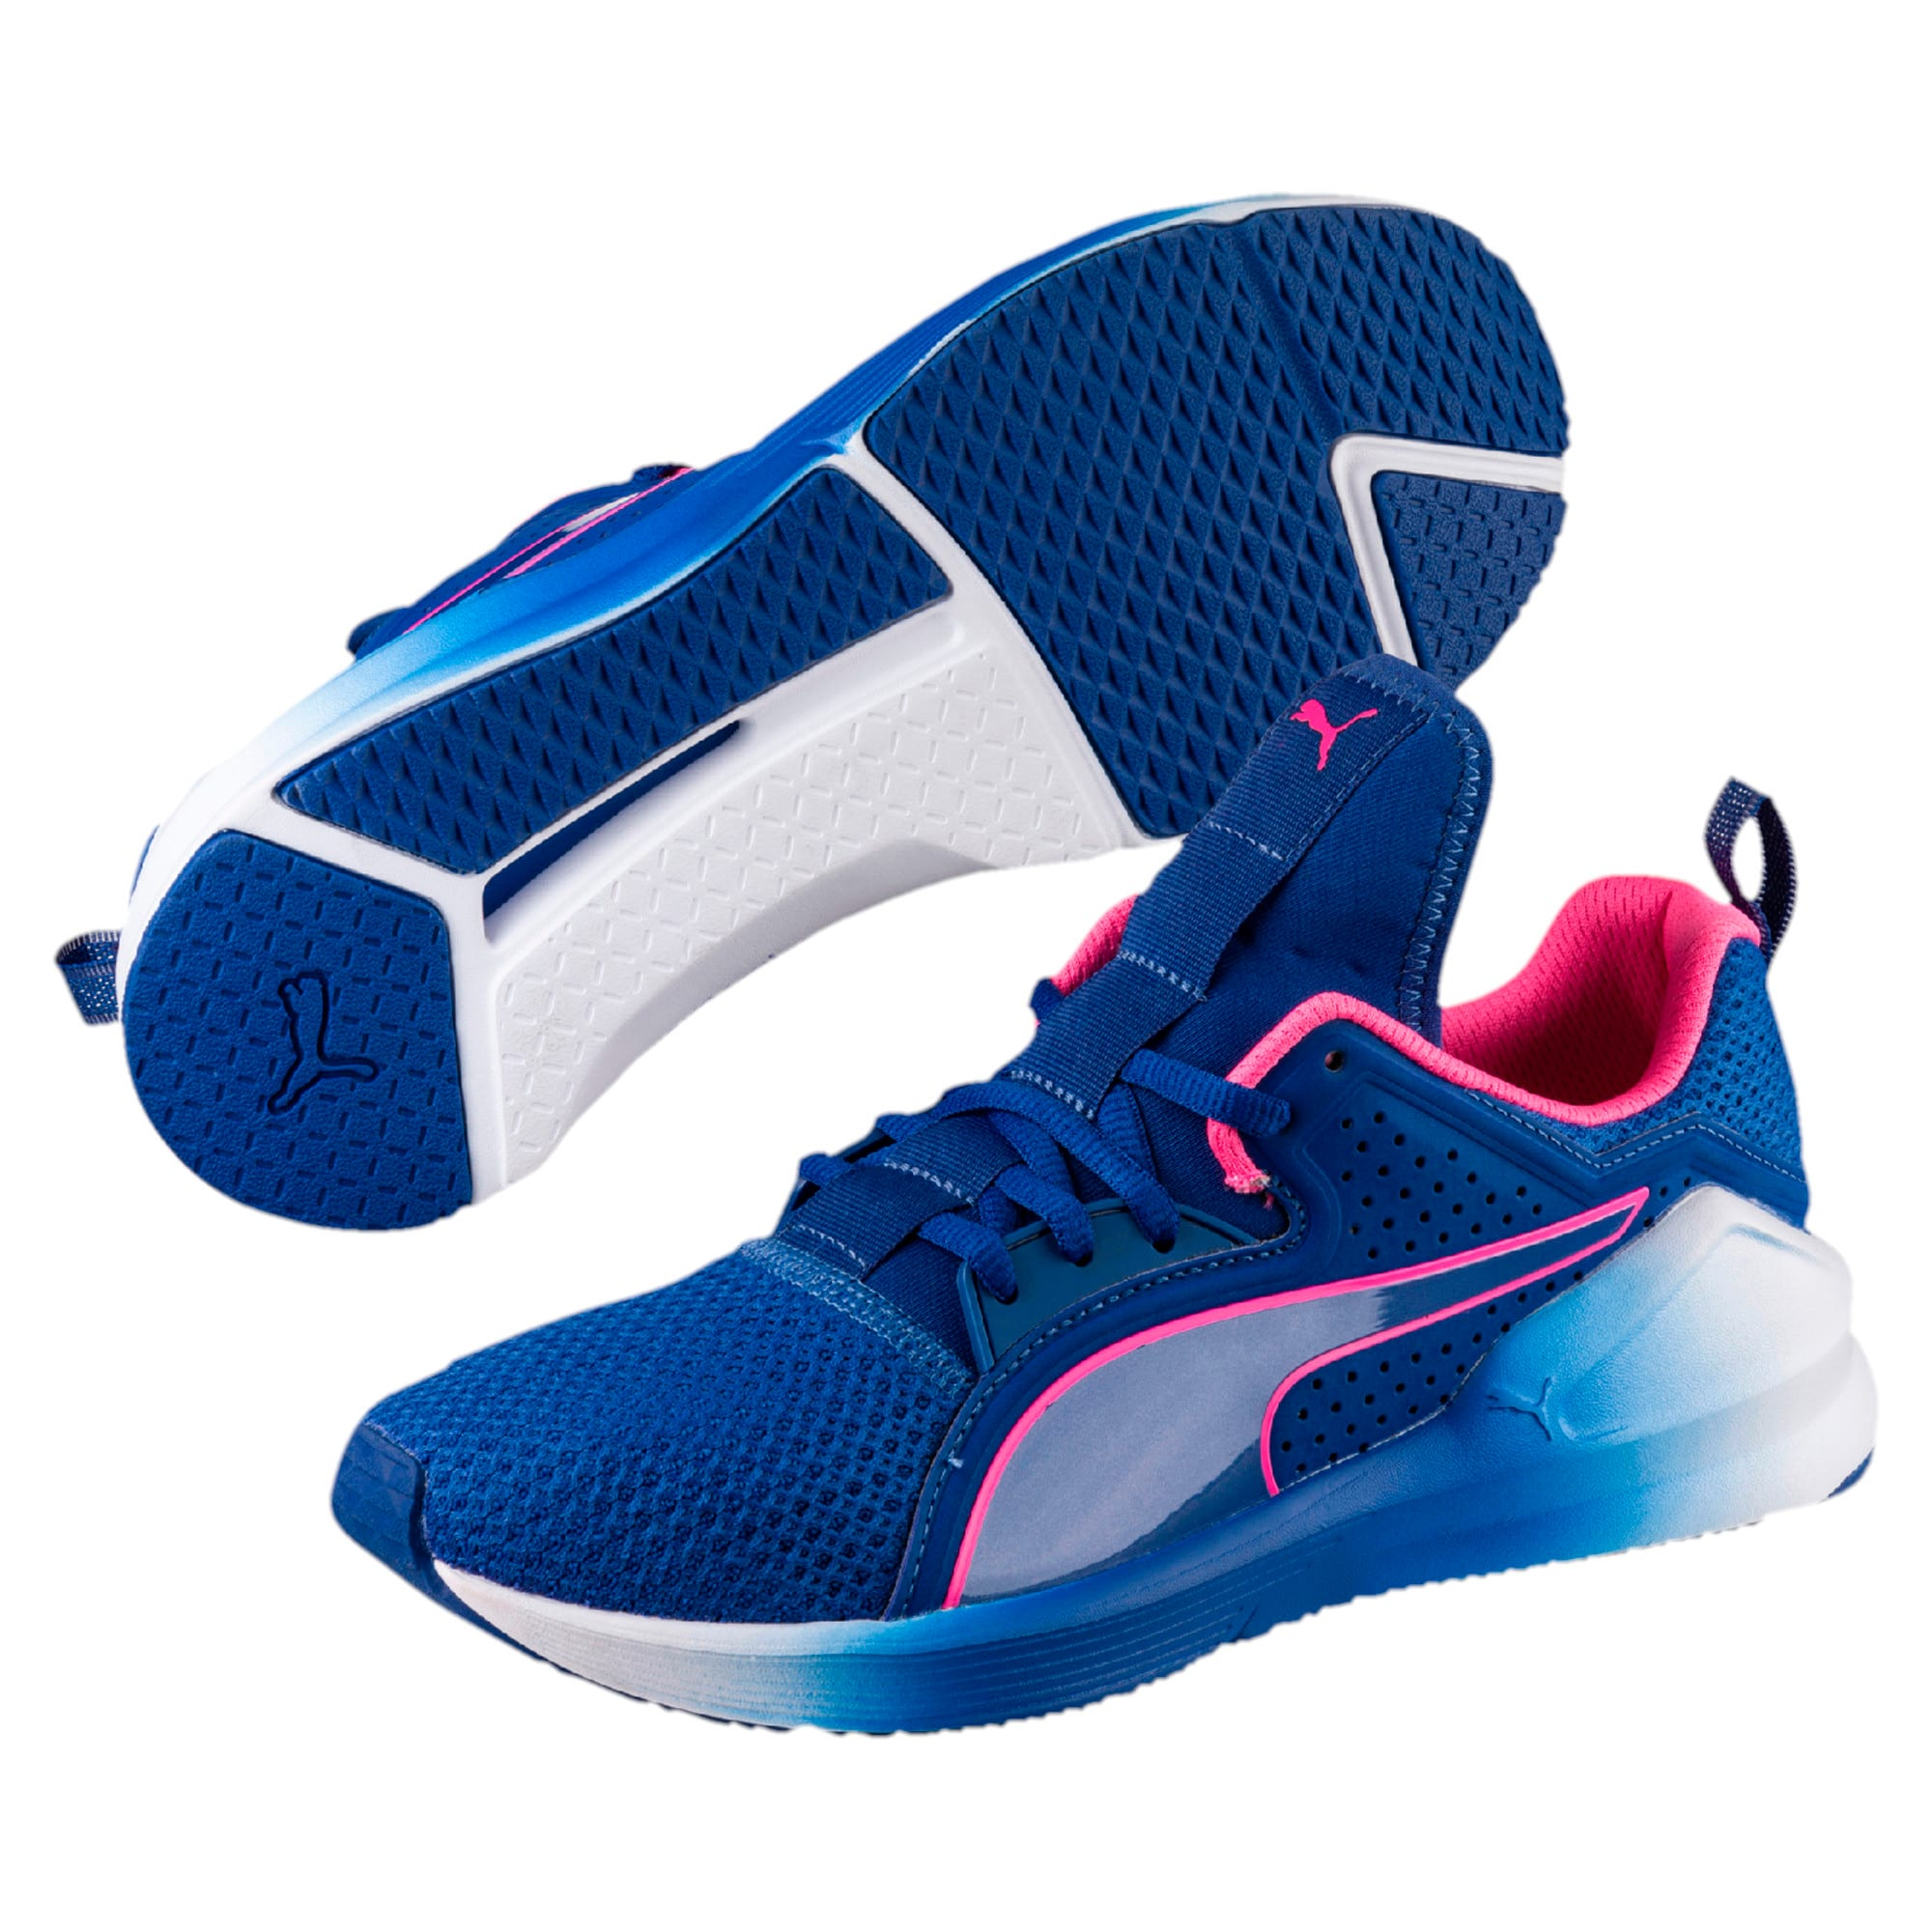 Thumbnail 6 of PUMA Fierce Lace Training Shoes, TRUE BLUE-KNOCKOUT PINK, medium-IND